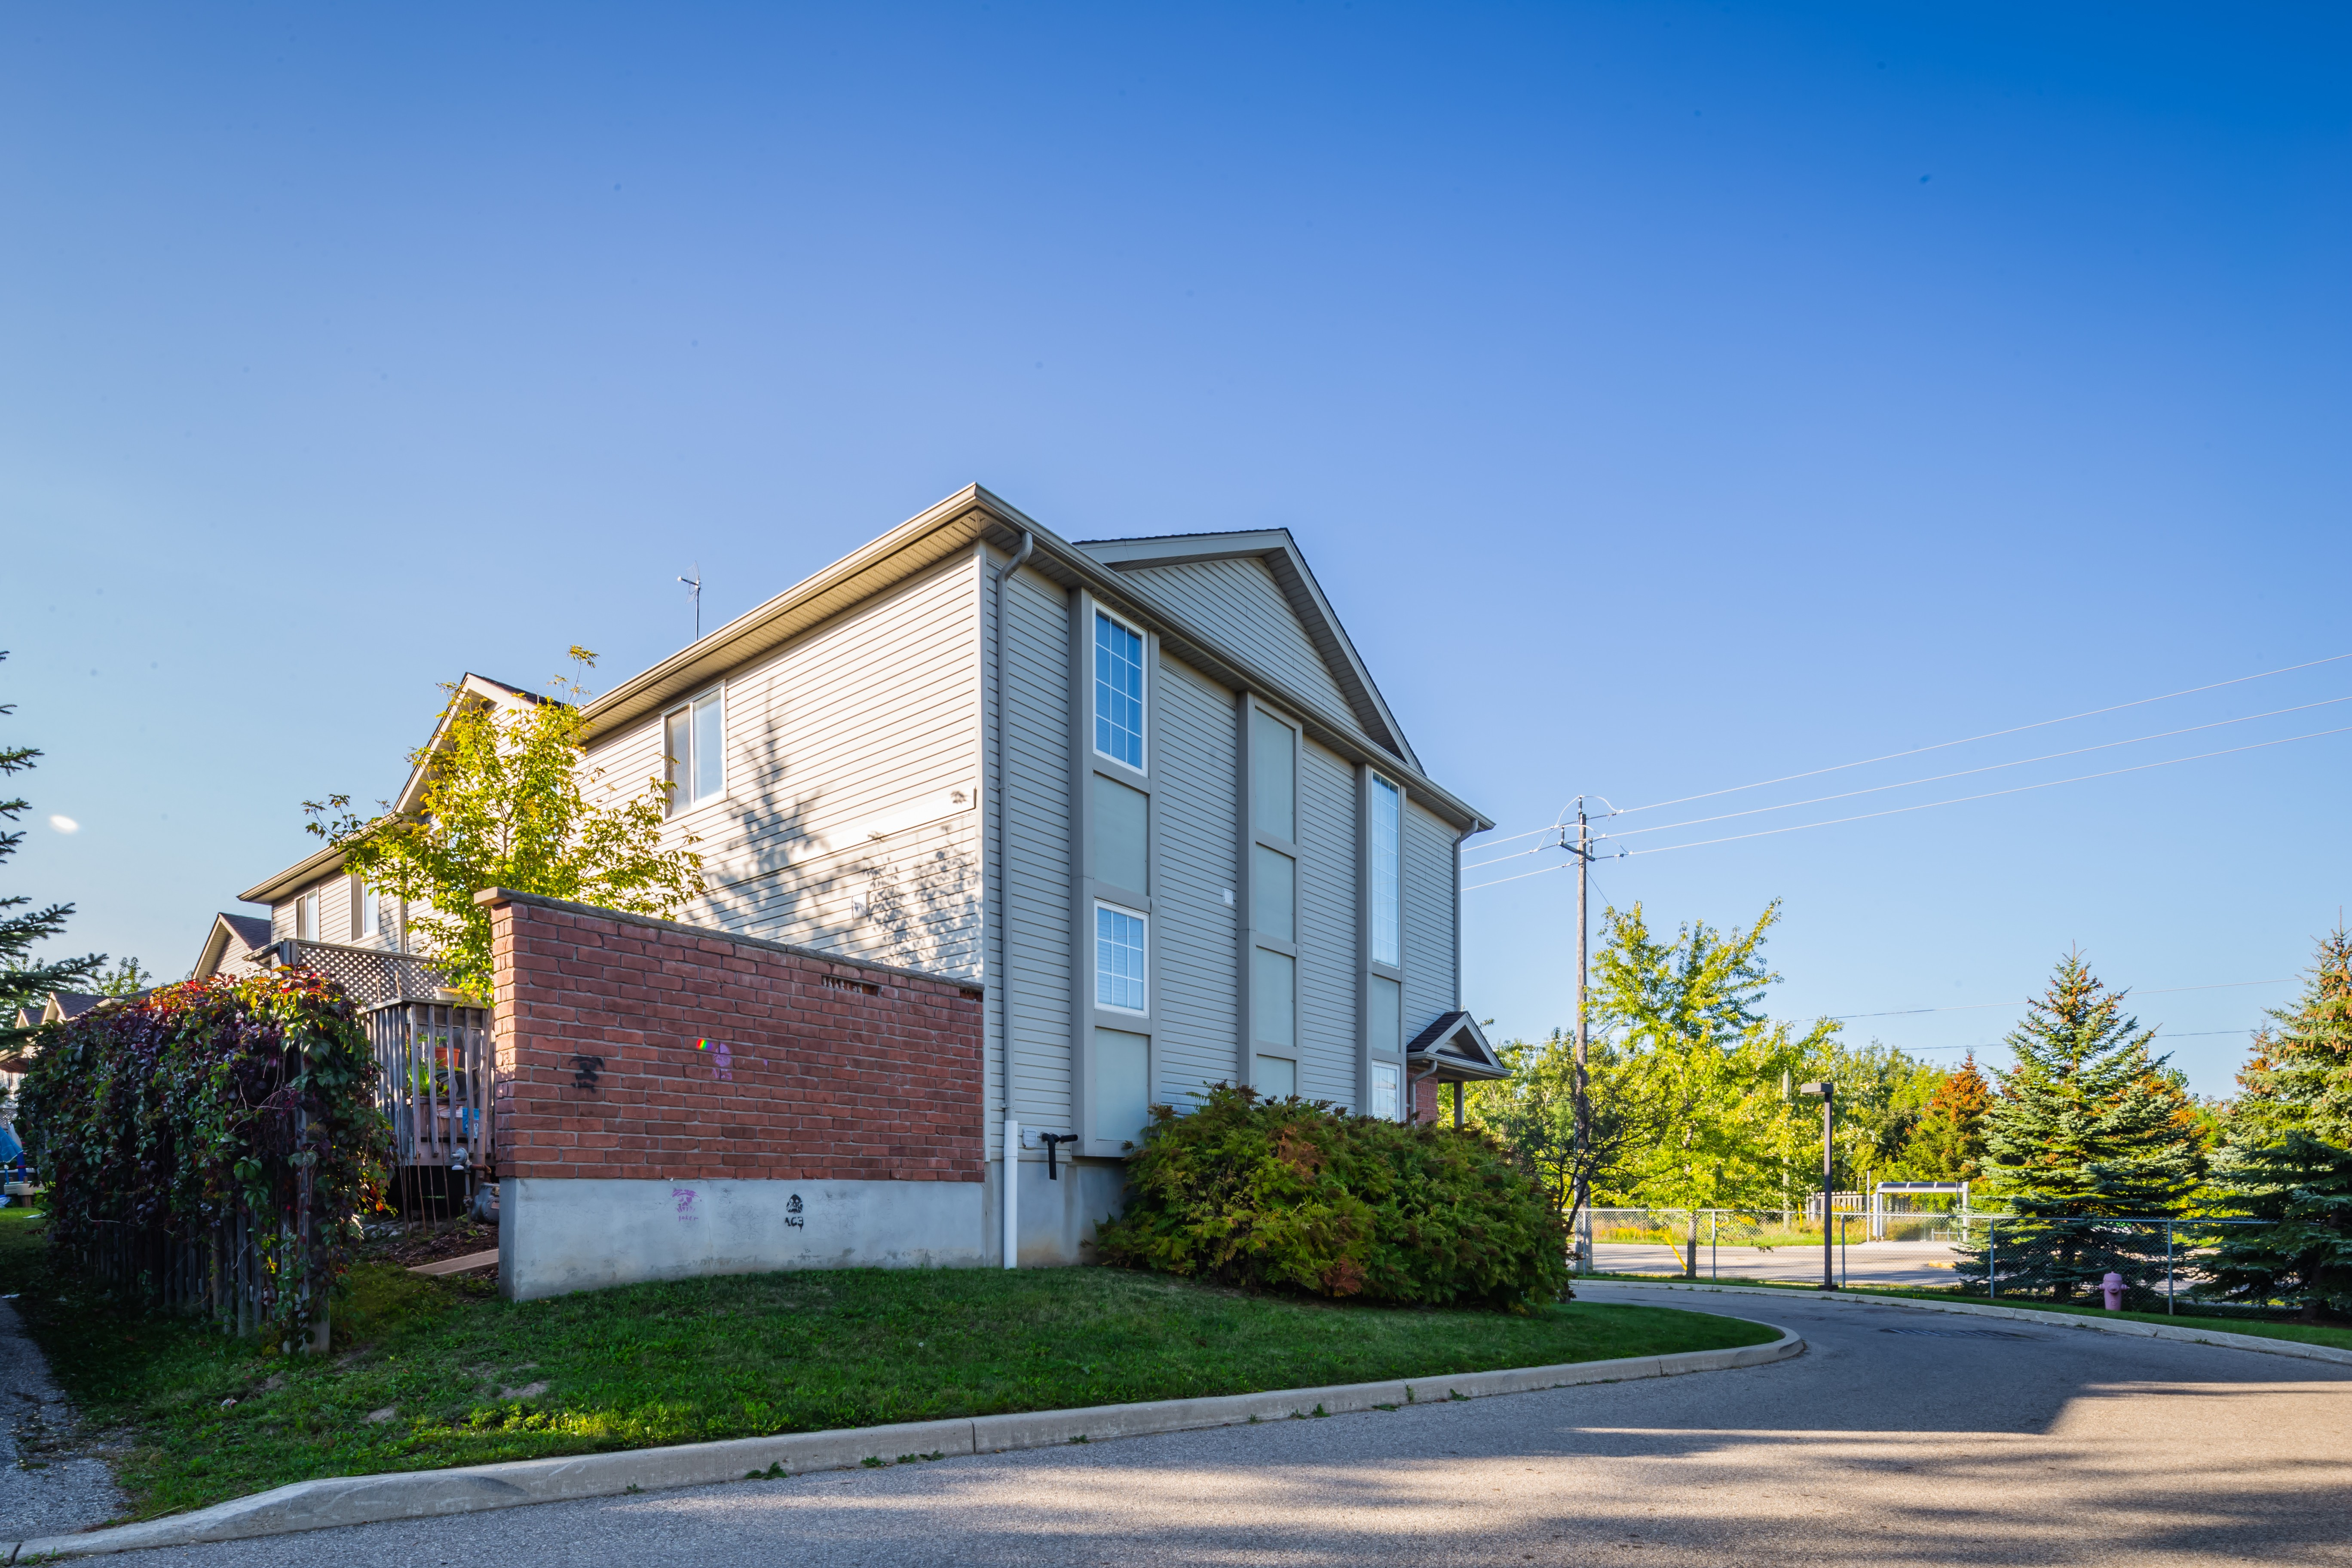 600 White Elm Townhomes at 600 White Elm Blvd, Waterloo 1